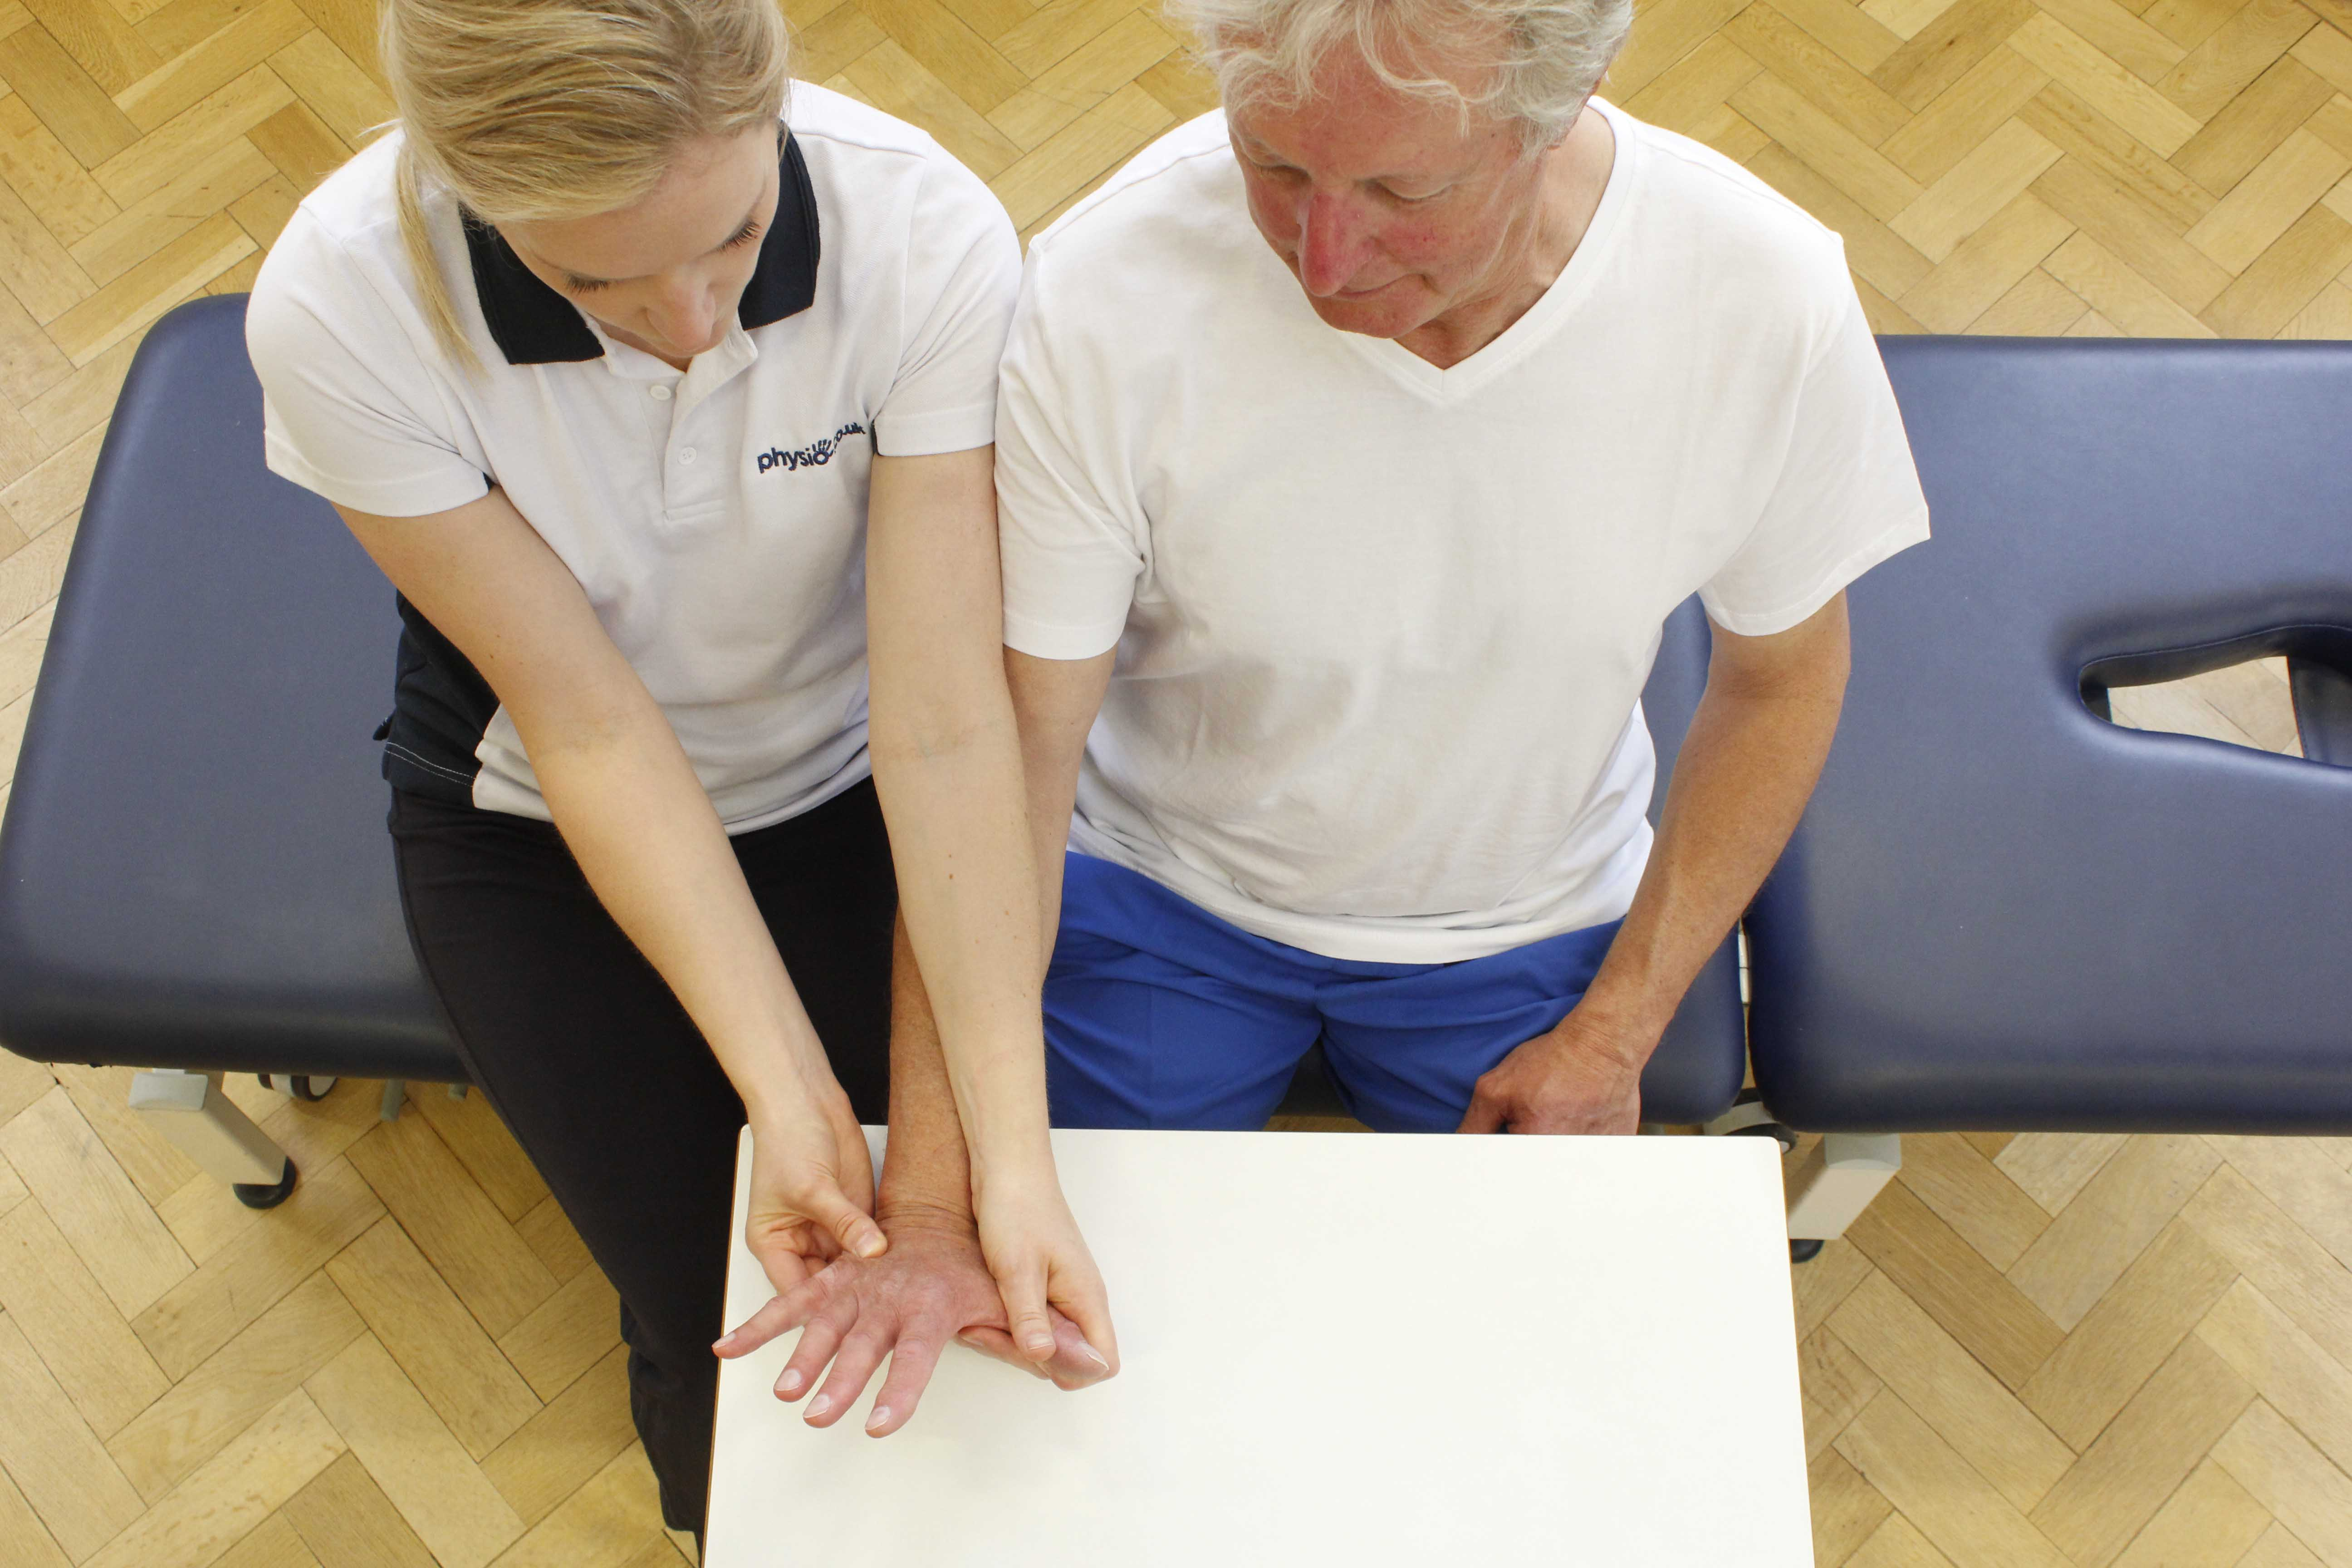 Hand massage and mobility exercises from a specialist physiotherapist